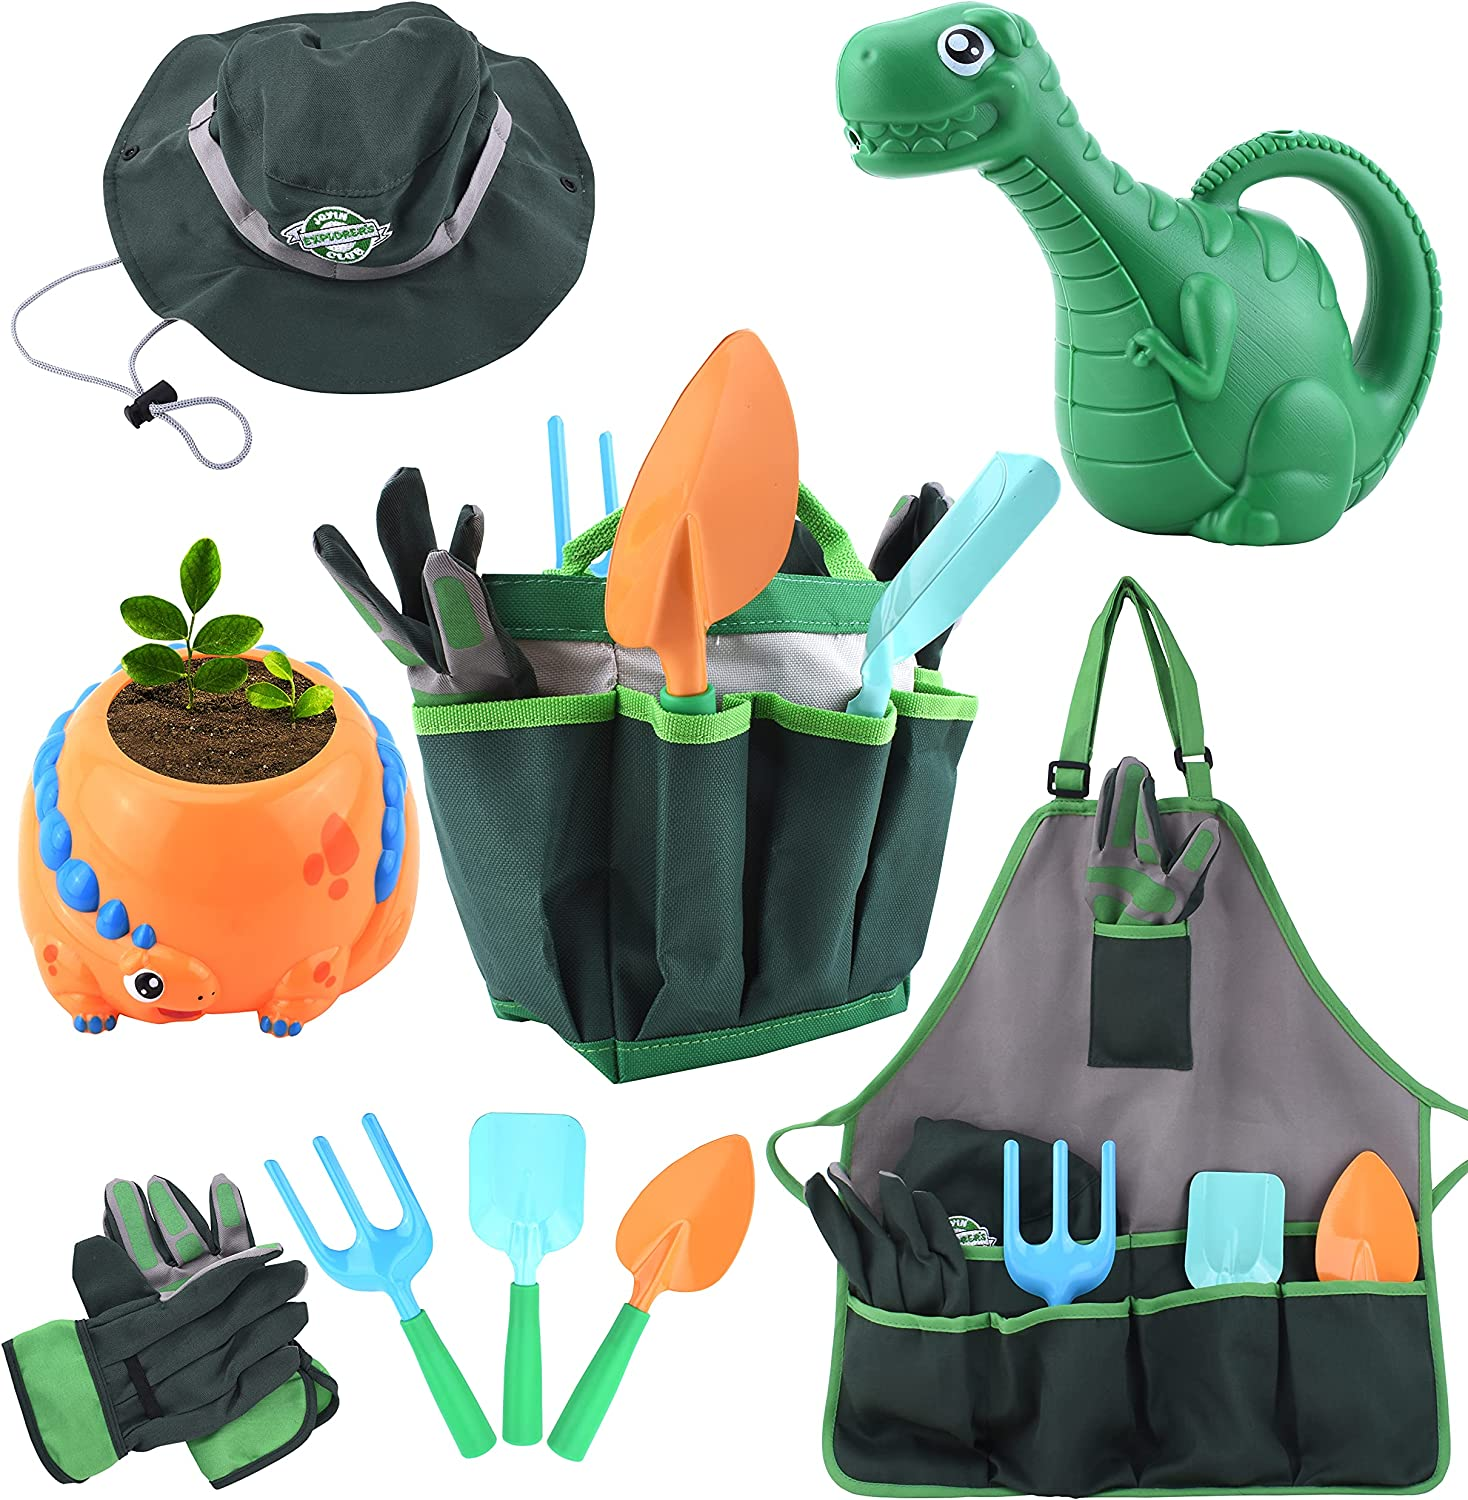 JOYIN Dinosaur Kids Gardening Tool Set Toy Includes Dinosaur Planter & Watering Can, Sun Hat, Apron, Gloves and Kids Gardening Kit Like Shovel, Rake and Trowel, Outdoor Play and Gifts for Boys